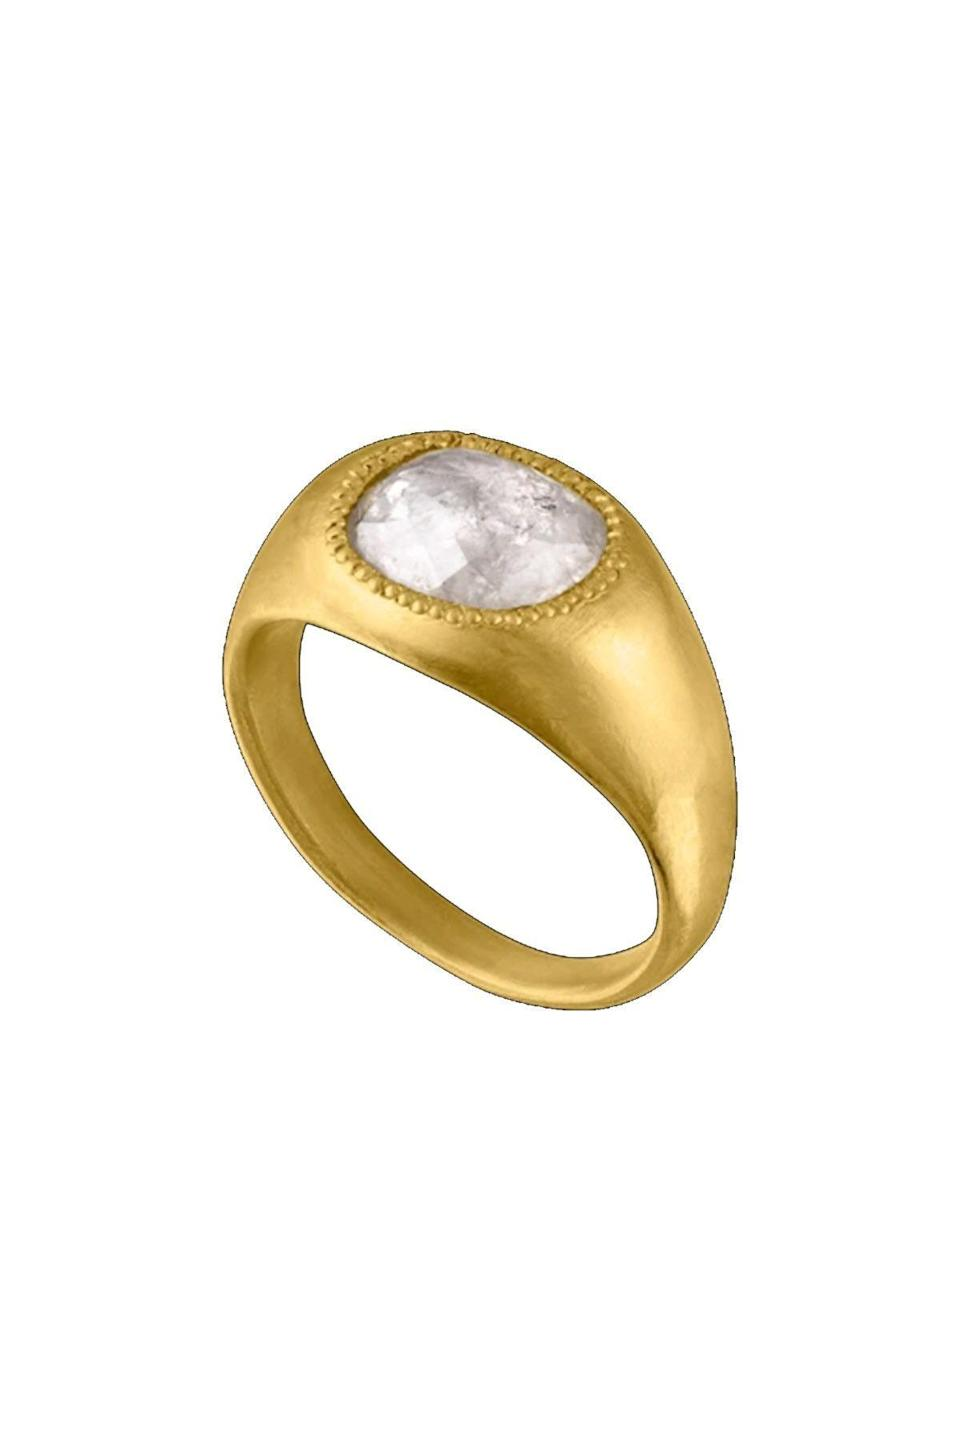 """<p><strong>Prounis</strong></p><p>prounisjewelry.com</p><p><a href=""""https://www.prounisjewelry.com/collections/rings/products/diamond-roz-ring"""" rel=""""nofollow noopener"""" target=""""_blank"""" data-ylk=""""slk:Shop Now"""" class=""""link rapid-noclick-resp"""">Shop Now</a></p><p>Prounis's goldsmithing is shown off with a gypsy-set ring featuring her signature granulation.</p>"""